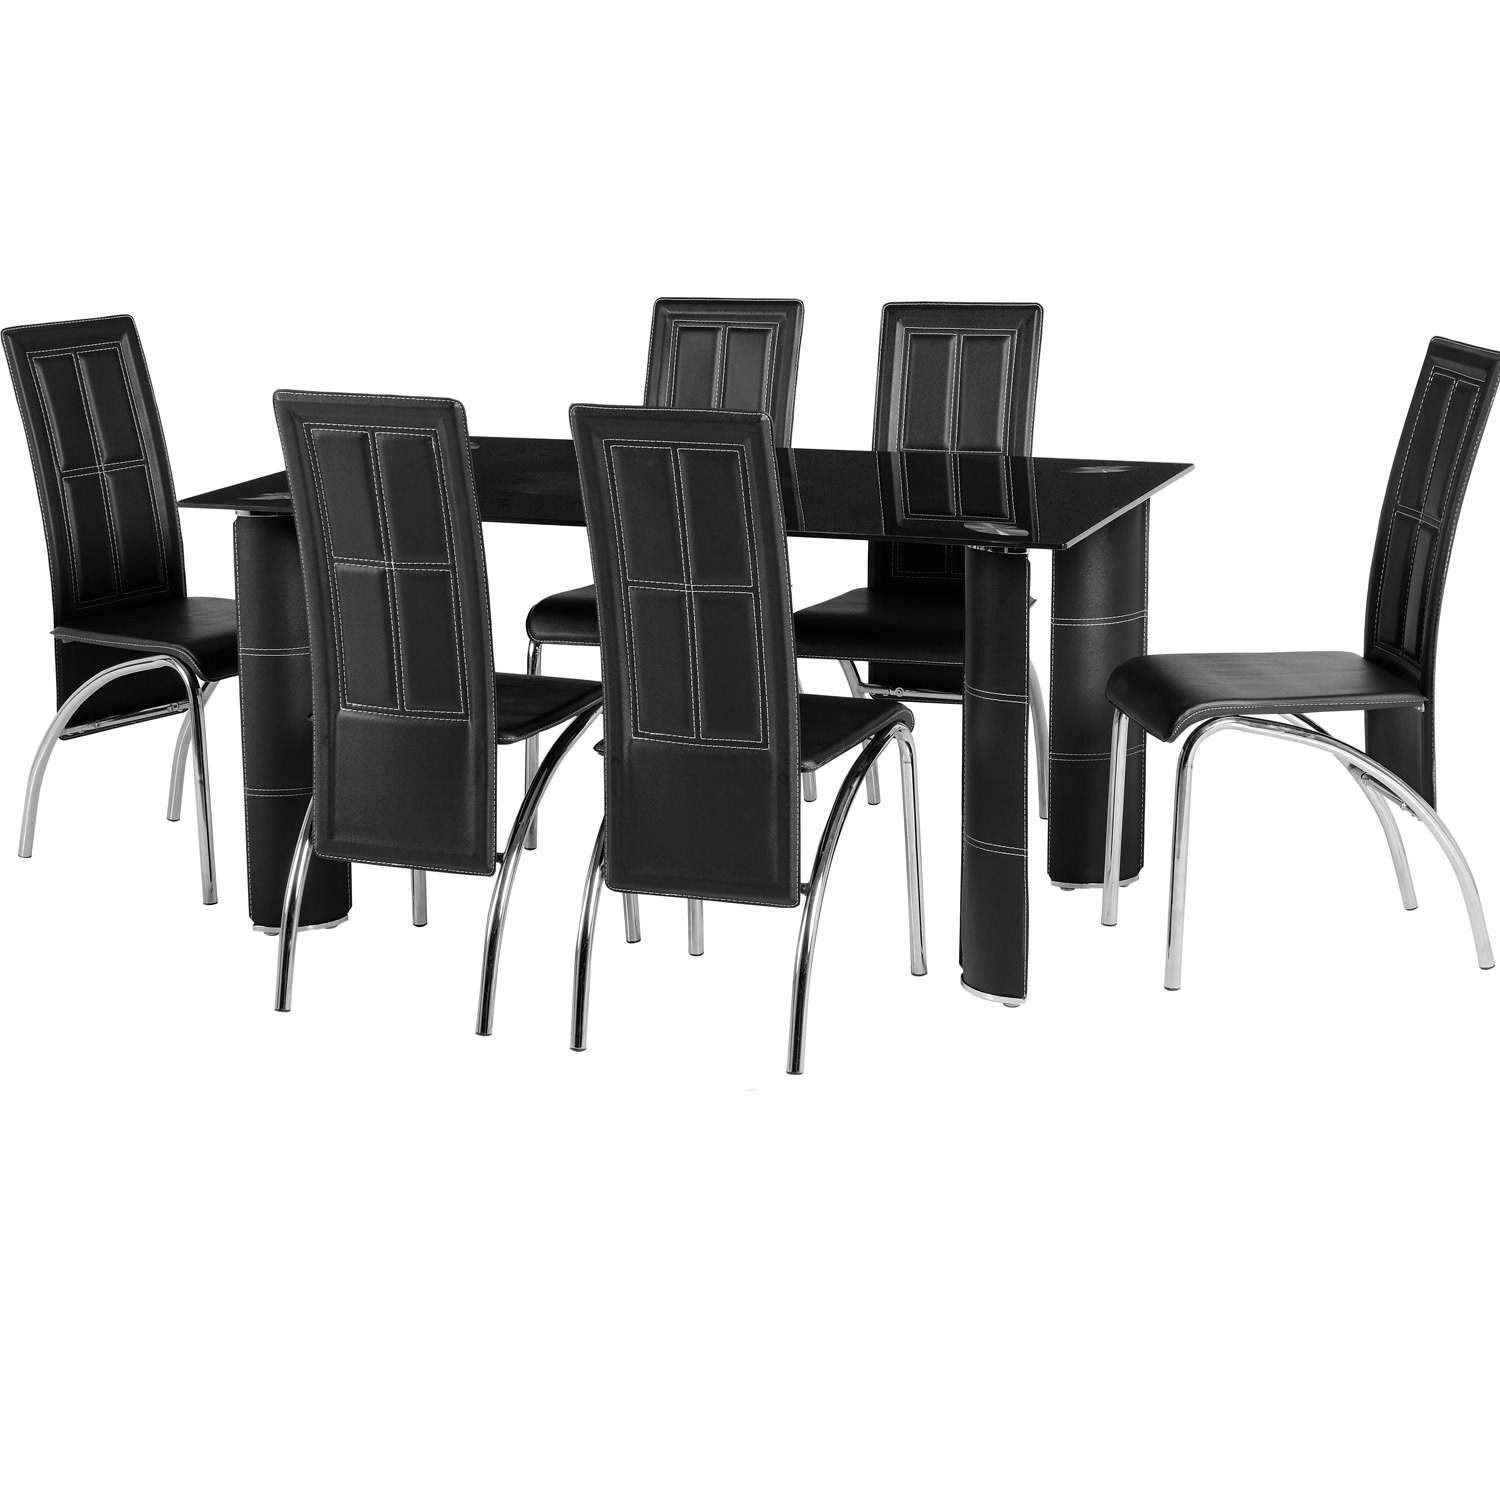 GRADE A2   Light Cosmetic Damage   Seconique Bradford Glass Dining Table  Set With 6 Black